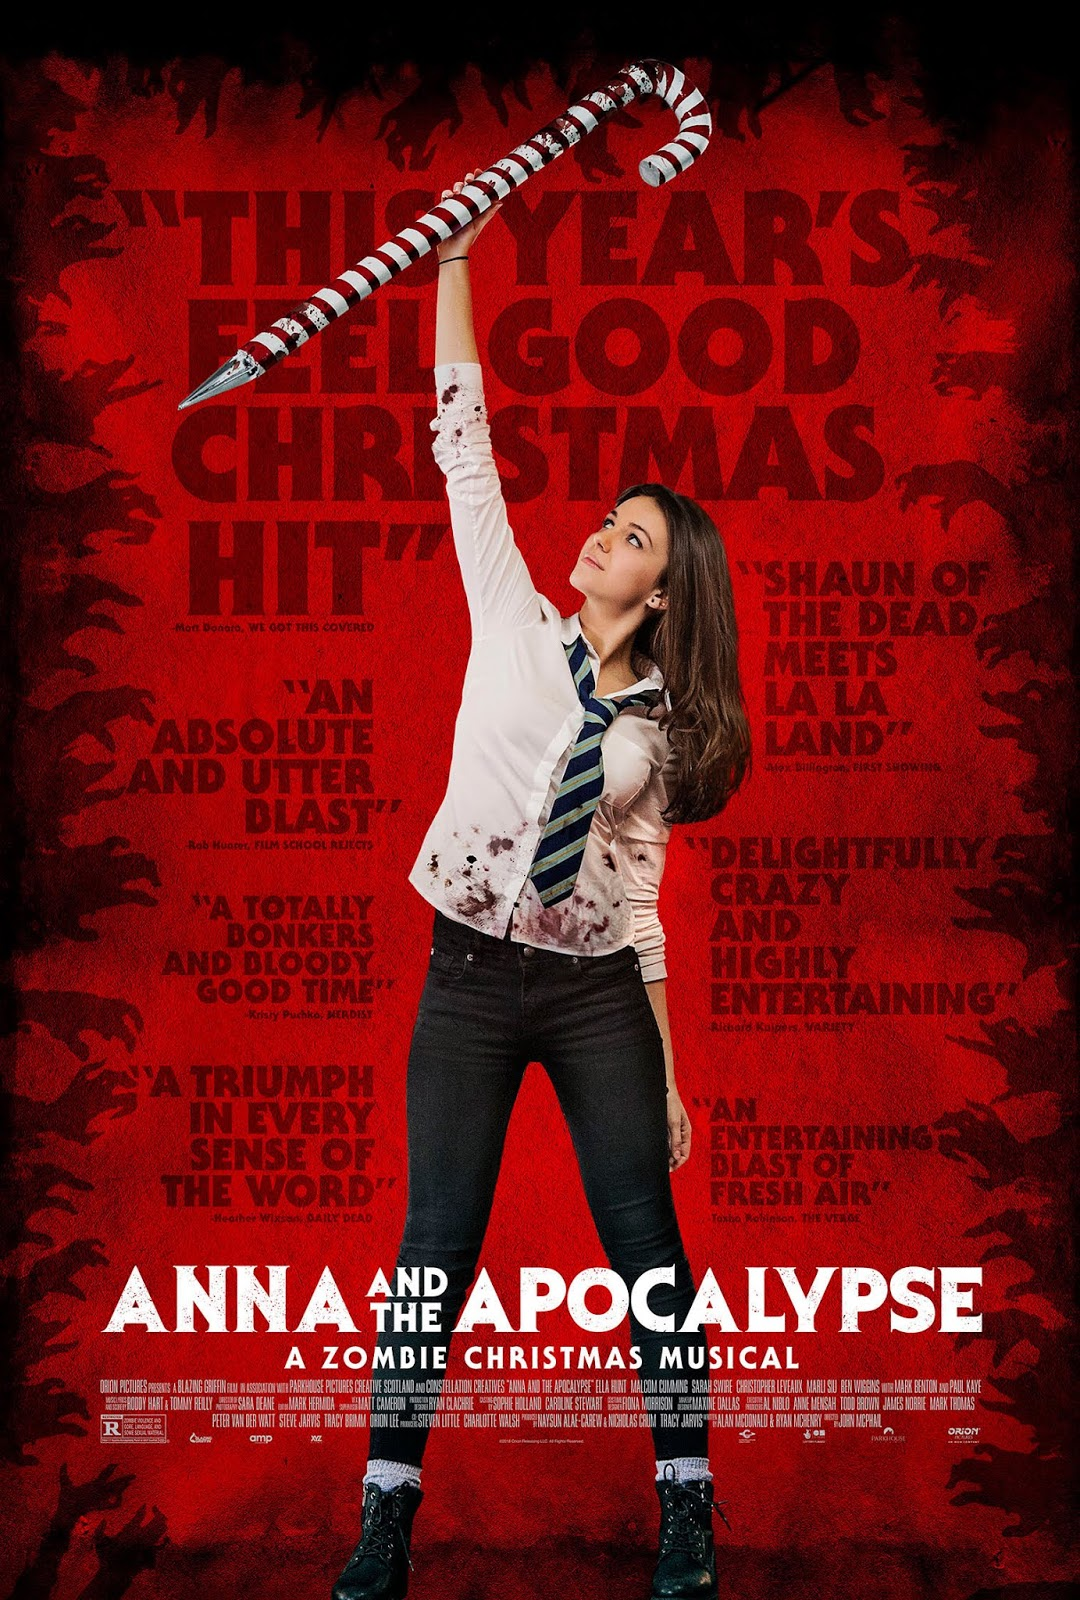 Film-Arcade.net: A Zombie Apocalypse Just in Time for Christmas with ...